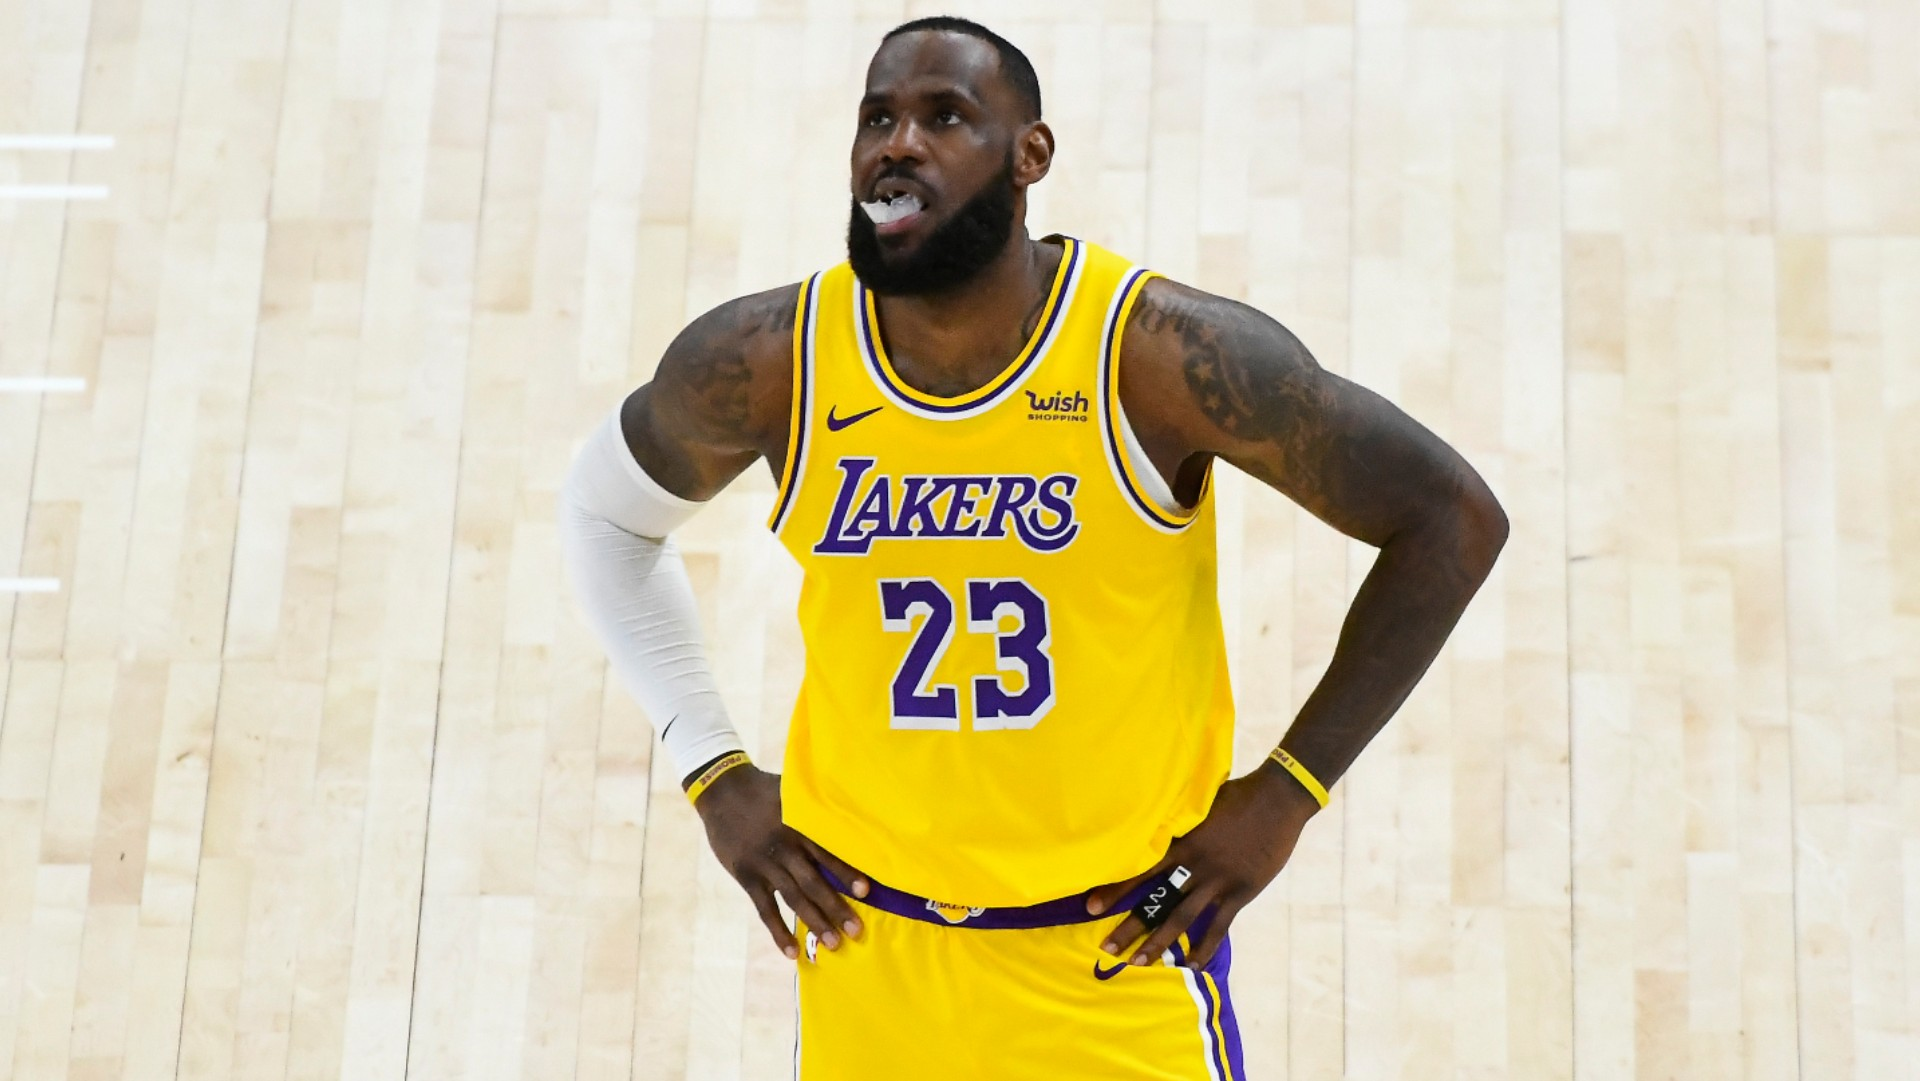 LeBron return still on hold but Lakers star says he is 'getting close'